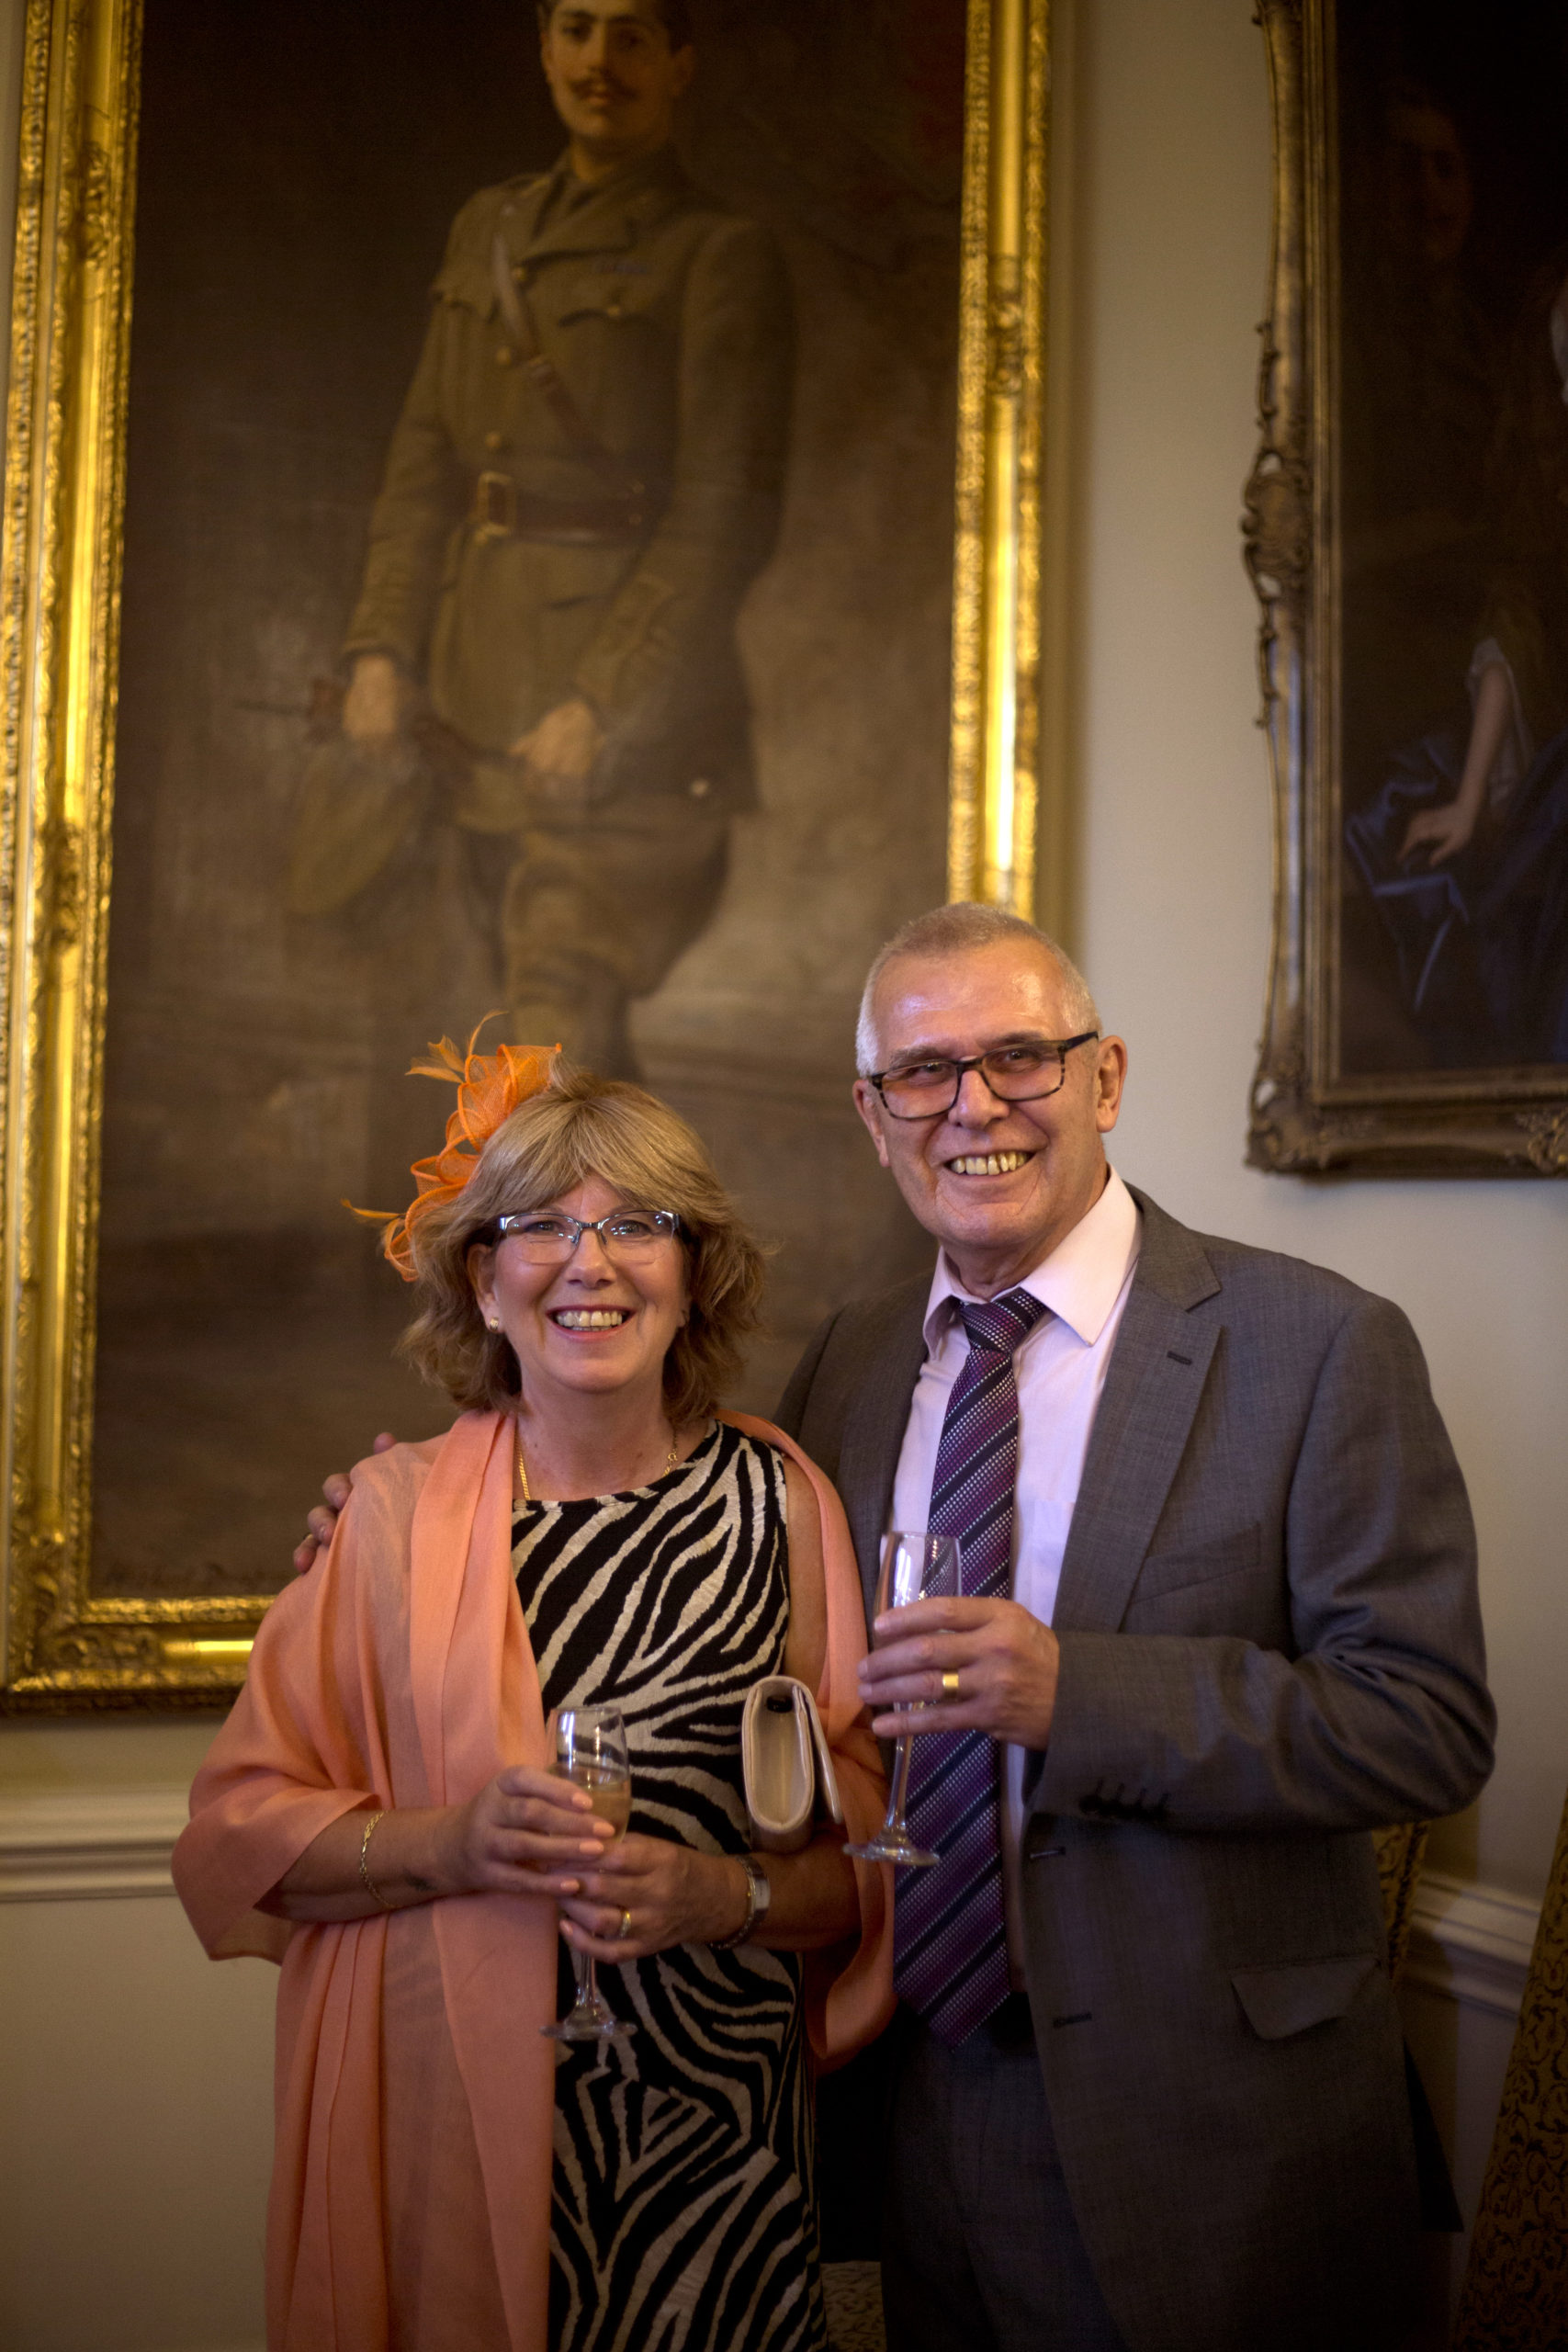 Smiling wedding guests Cardiff Castle Wedding Photographer